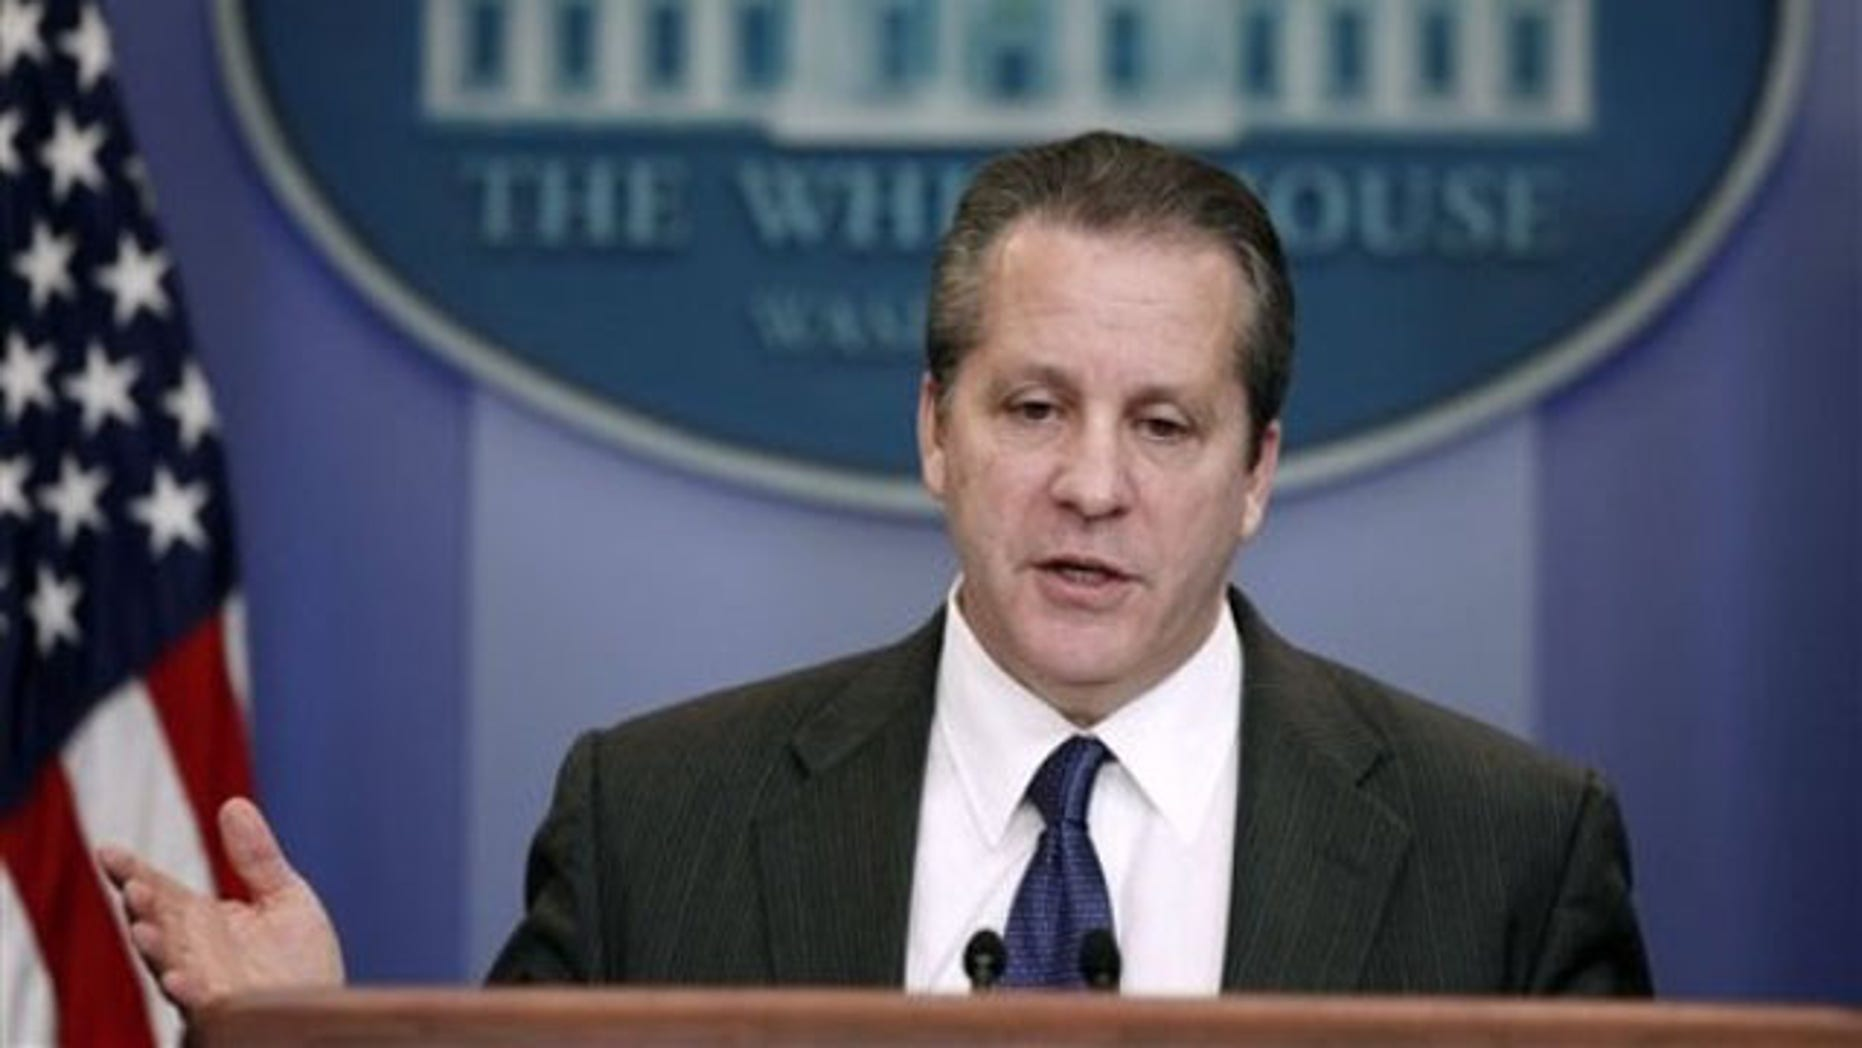 FILE: Feb. 4, 2013: Gene Sperling, director of the National Economic Council, speaks at the White House.